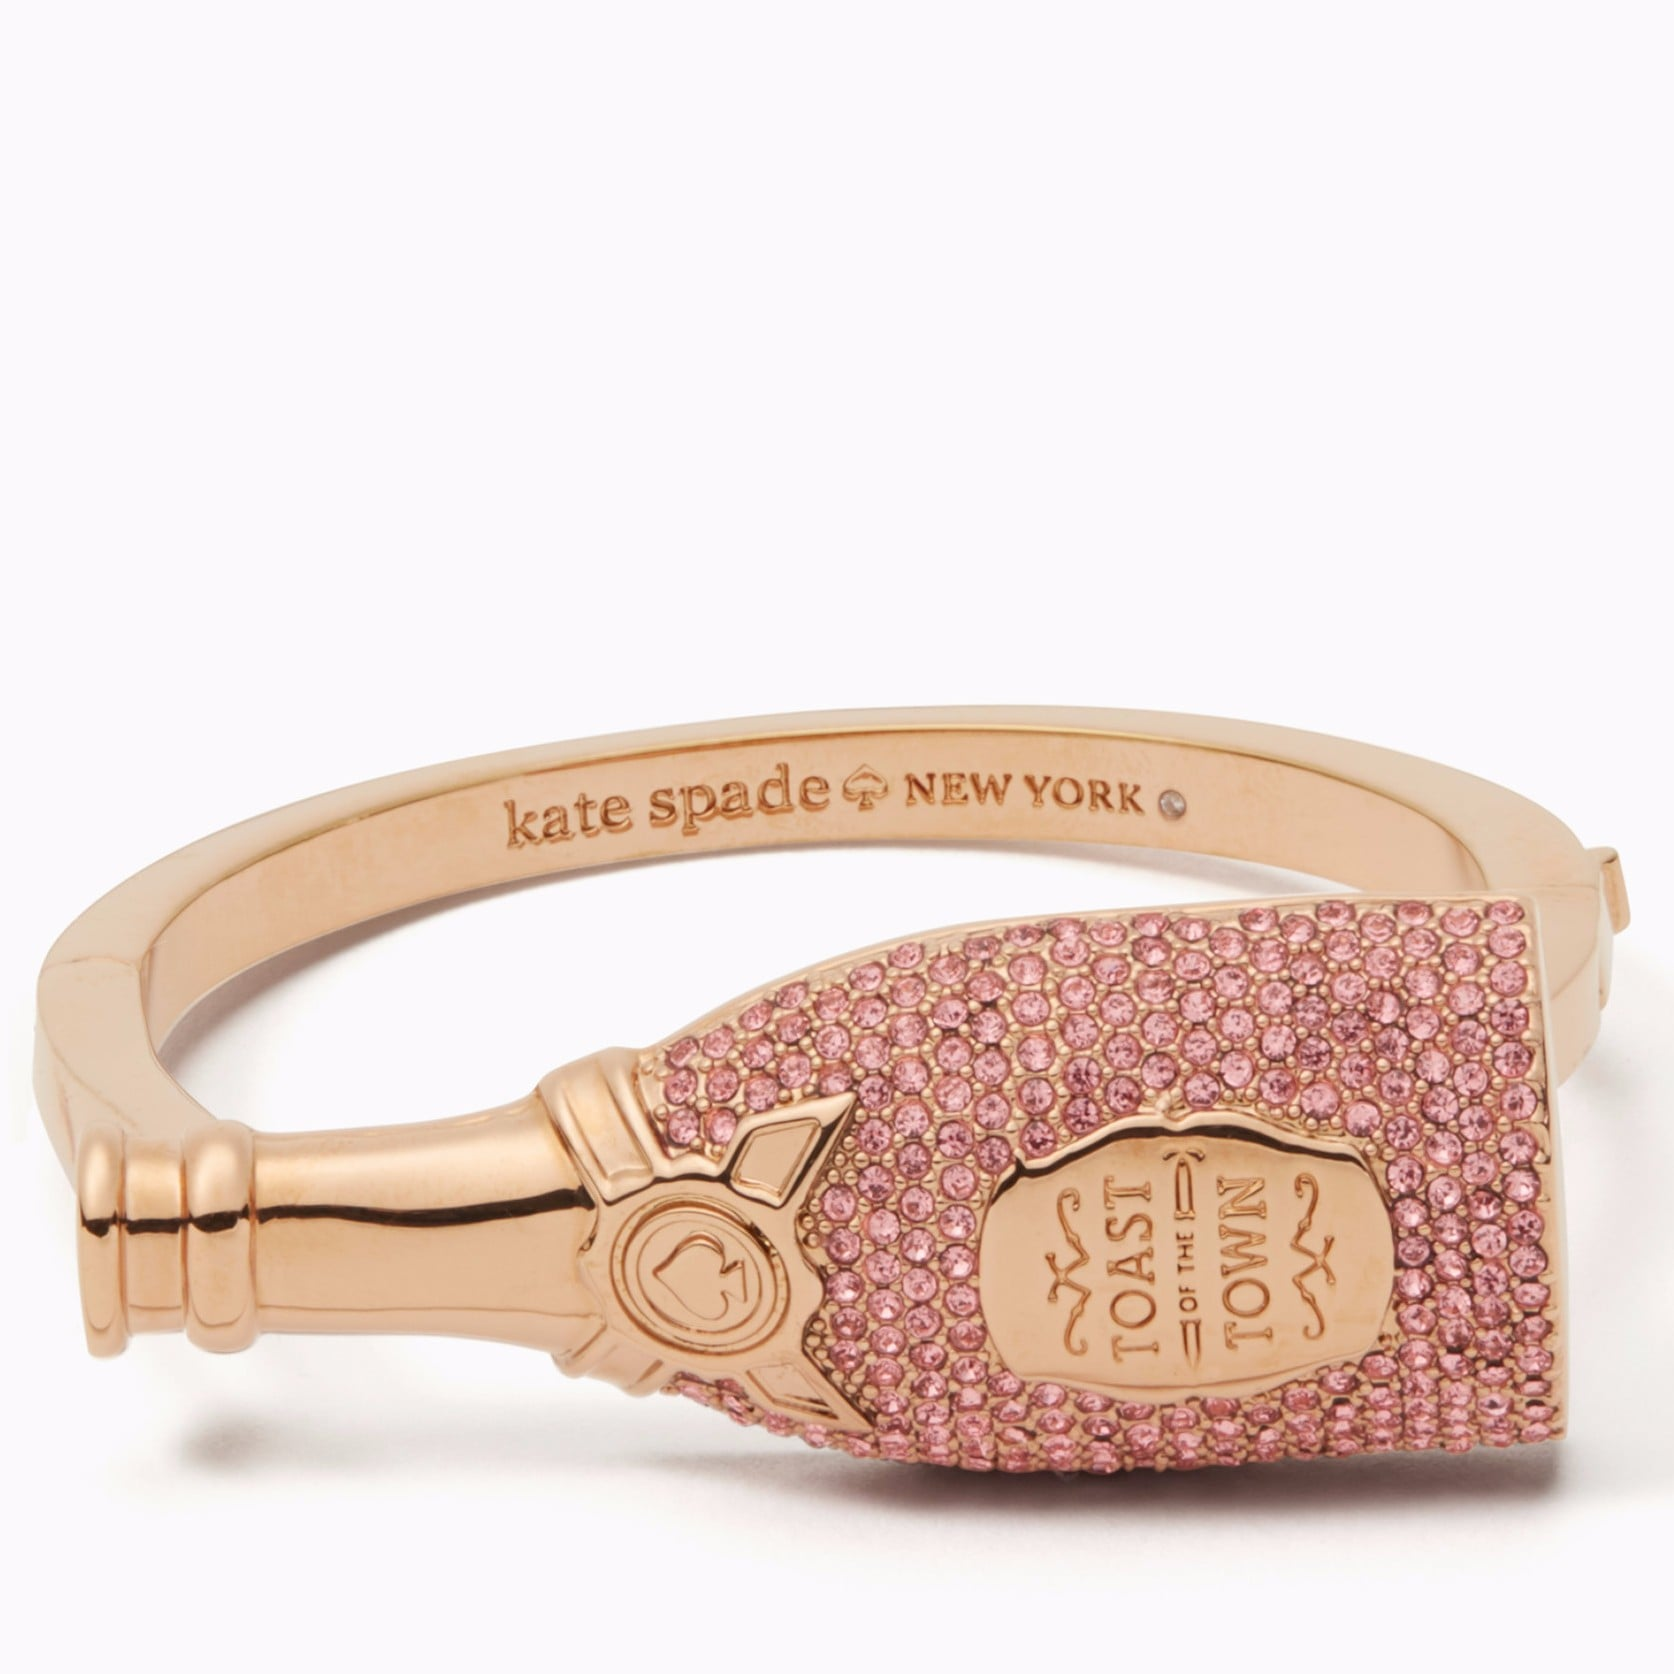 Kate Spade Champagne Bottle Keychain | Kate Spade Champagne